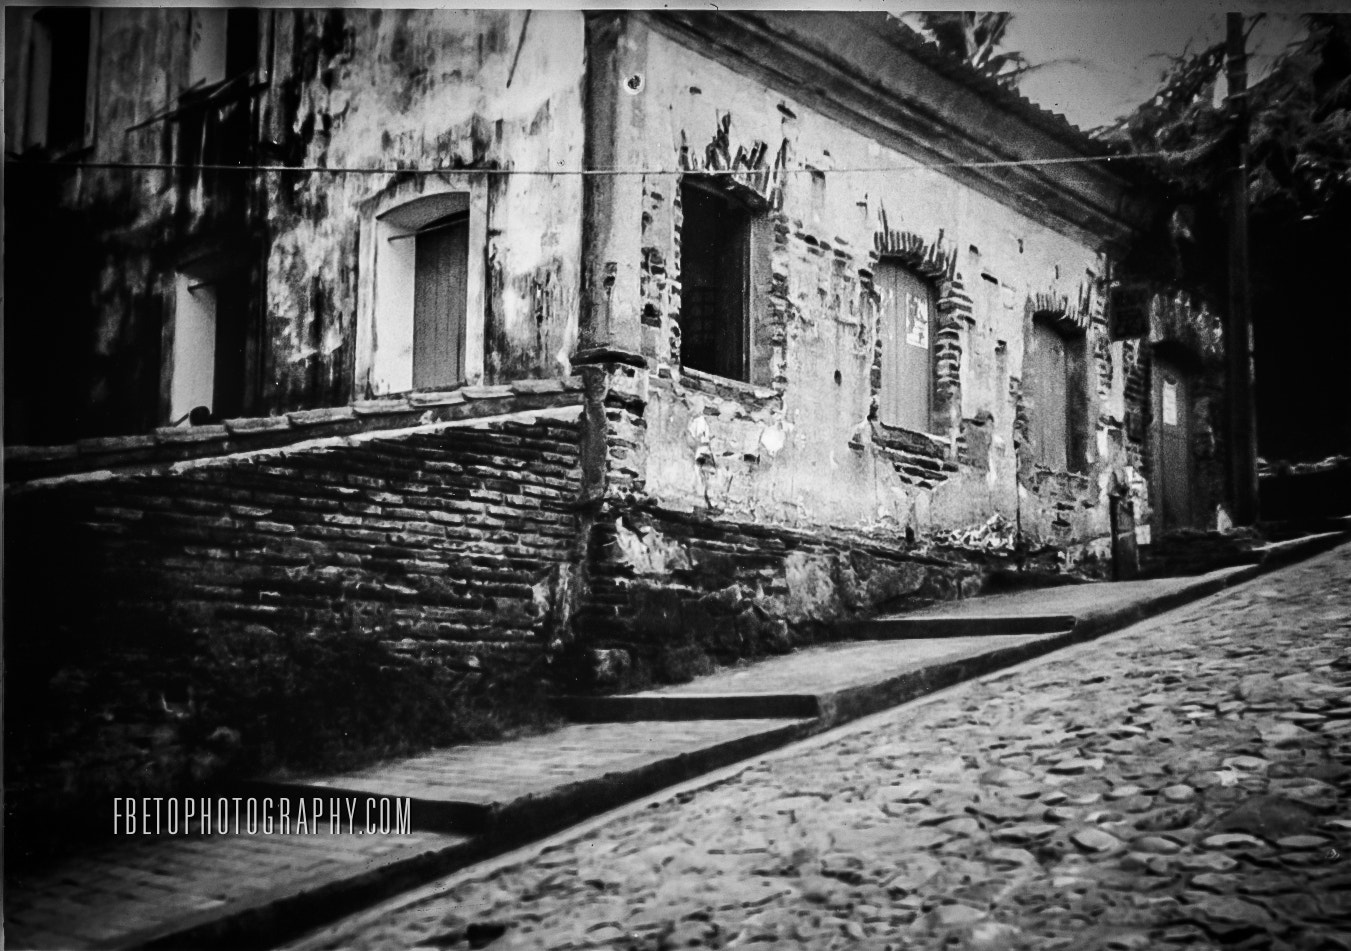 Photograph My first film. by Fernando De Oliveira on 500px